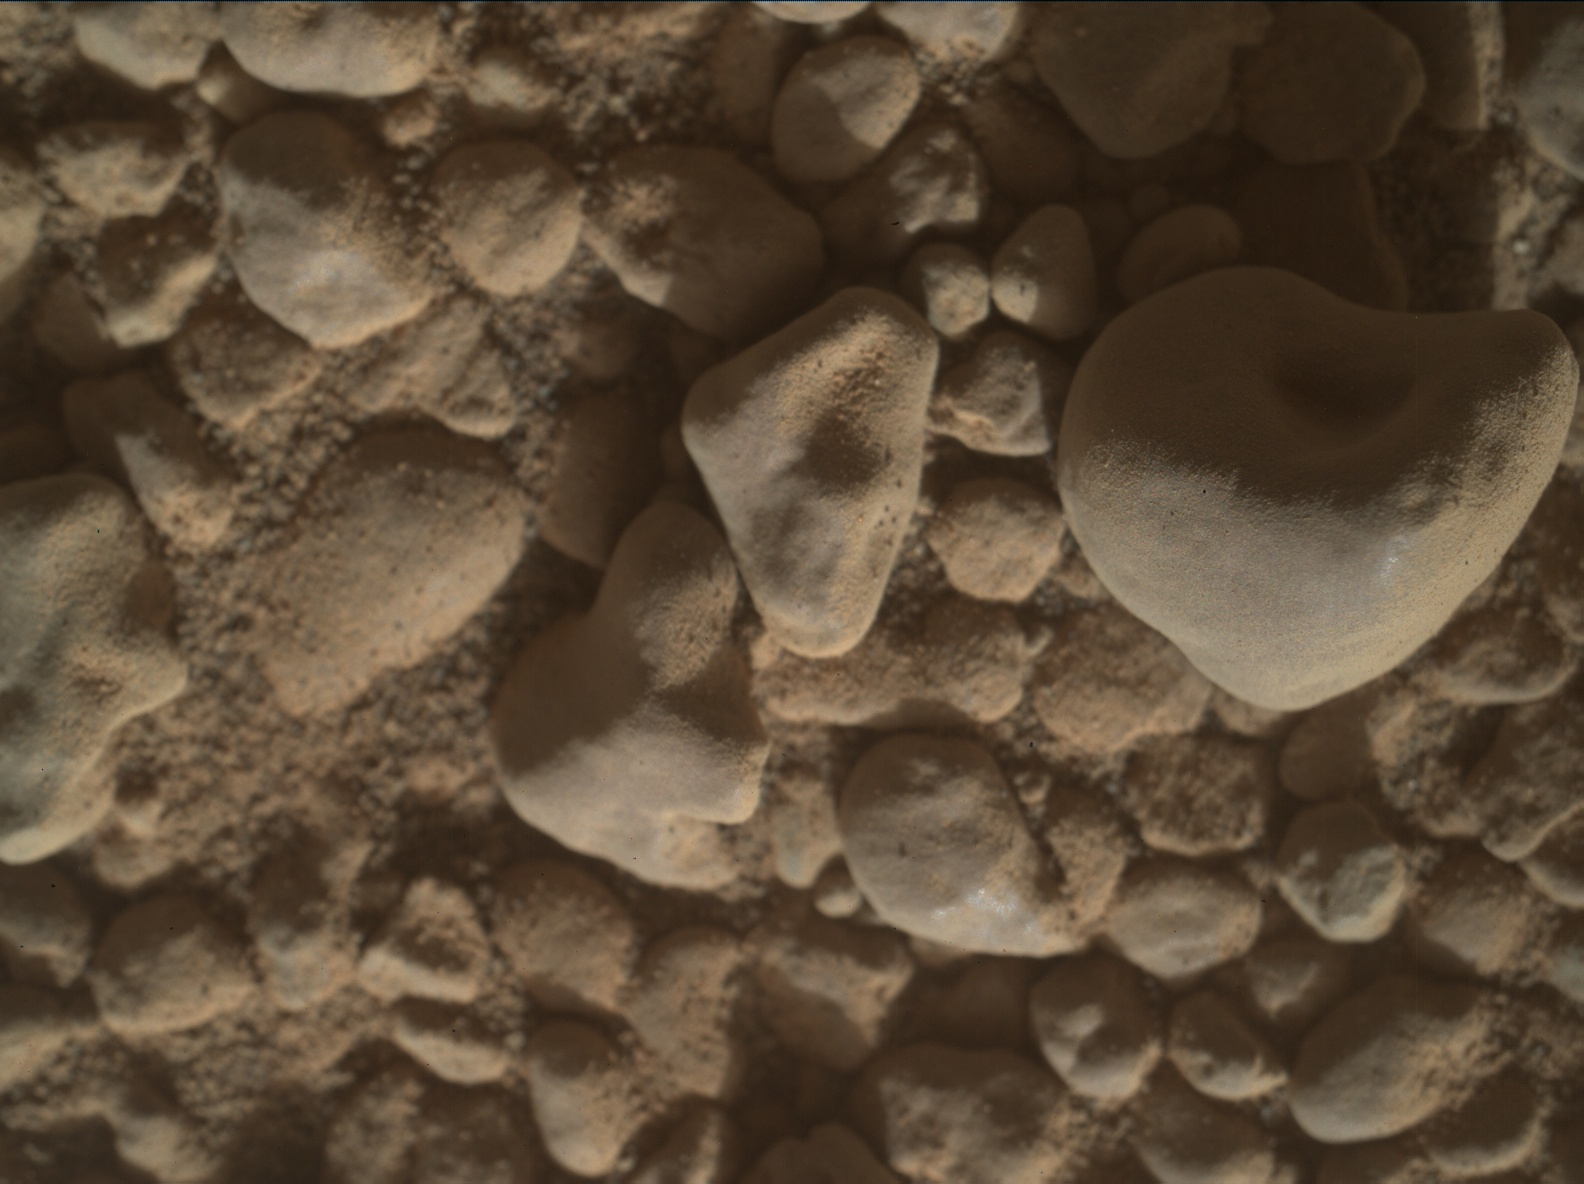 Nasa's Mars rover Curiosity acquired this image using its Mars Hand Lens Imager (MAHLI) on Sol 2558